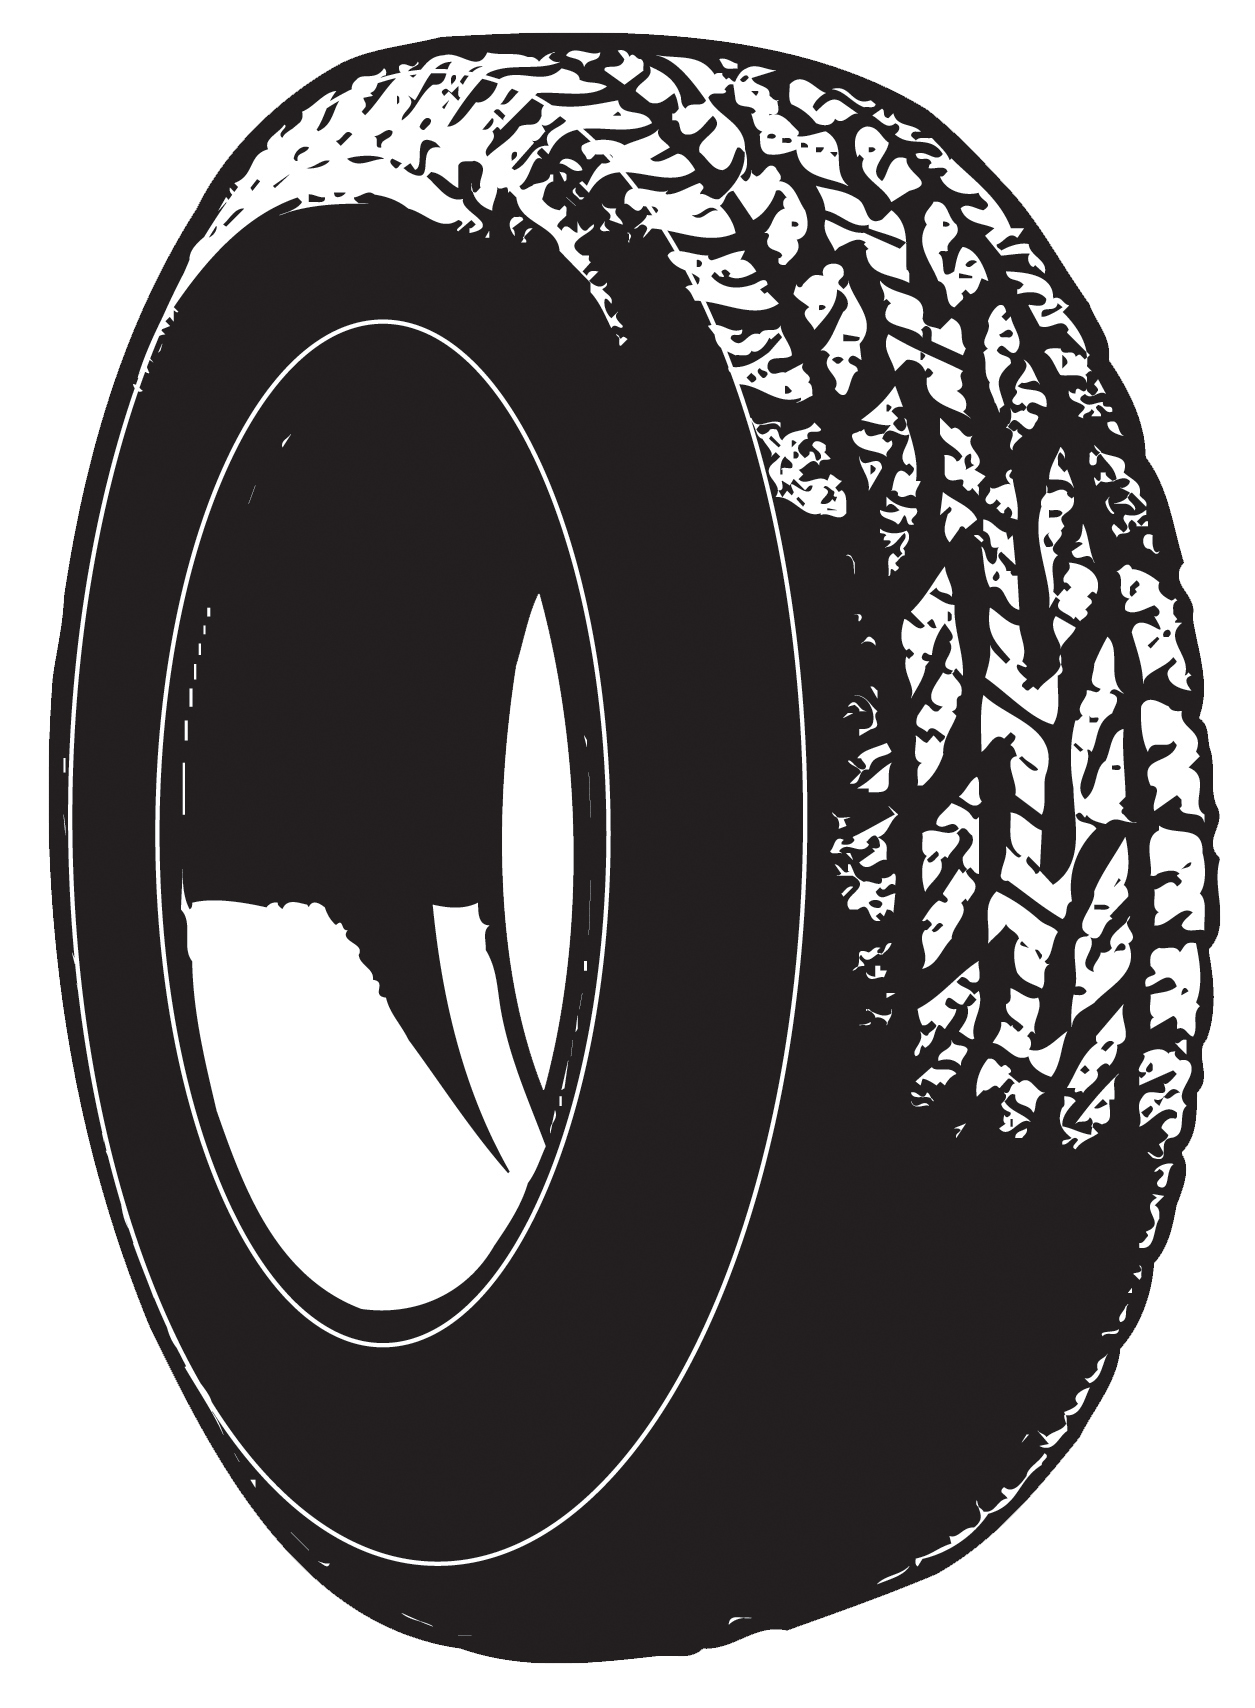 Automobile Tire, Tire Care, Tire Maintenance, Tire Service, New Tires image #474